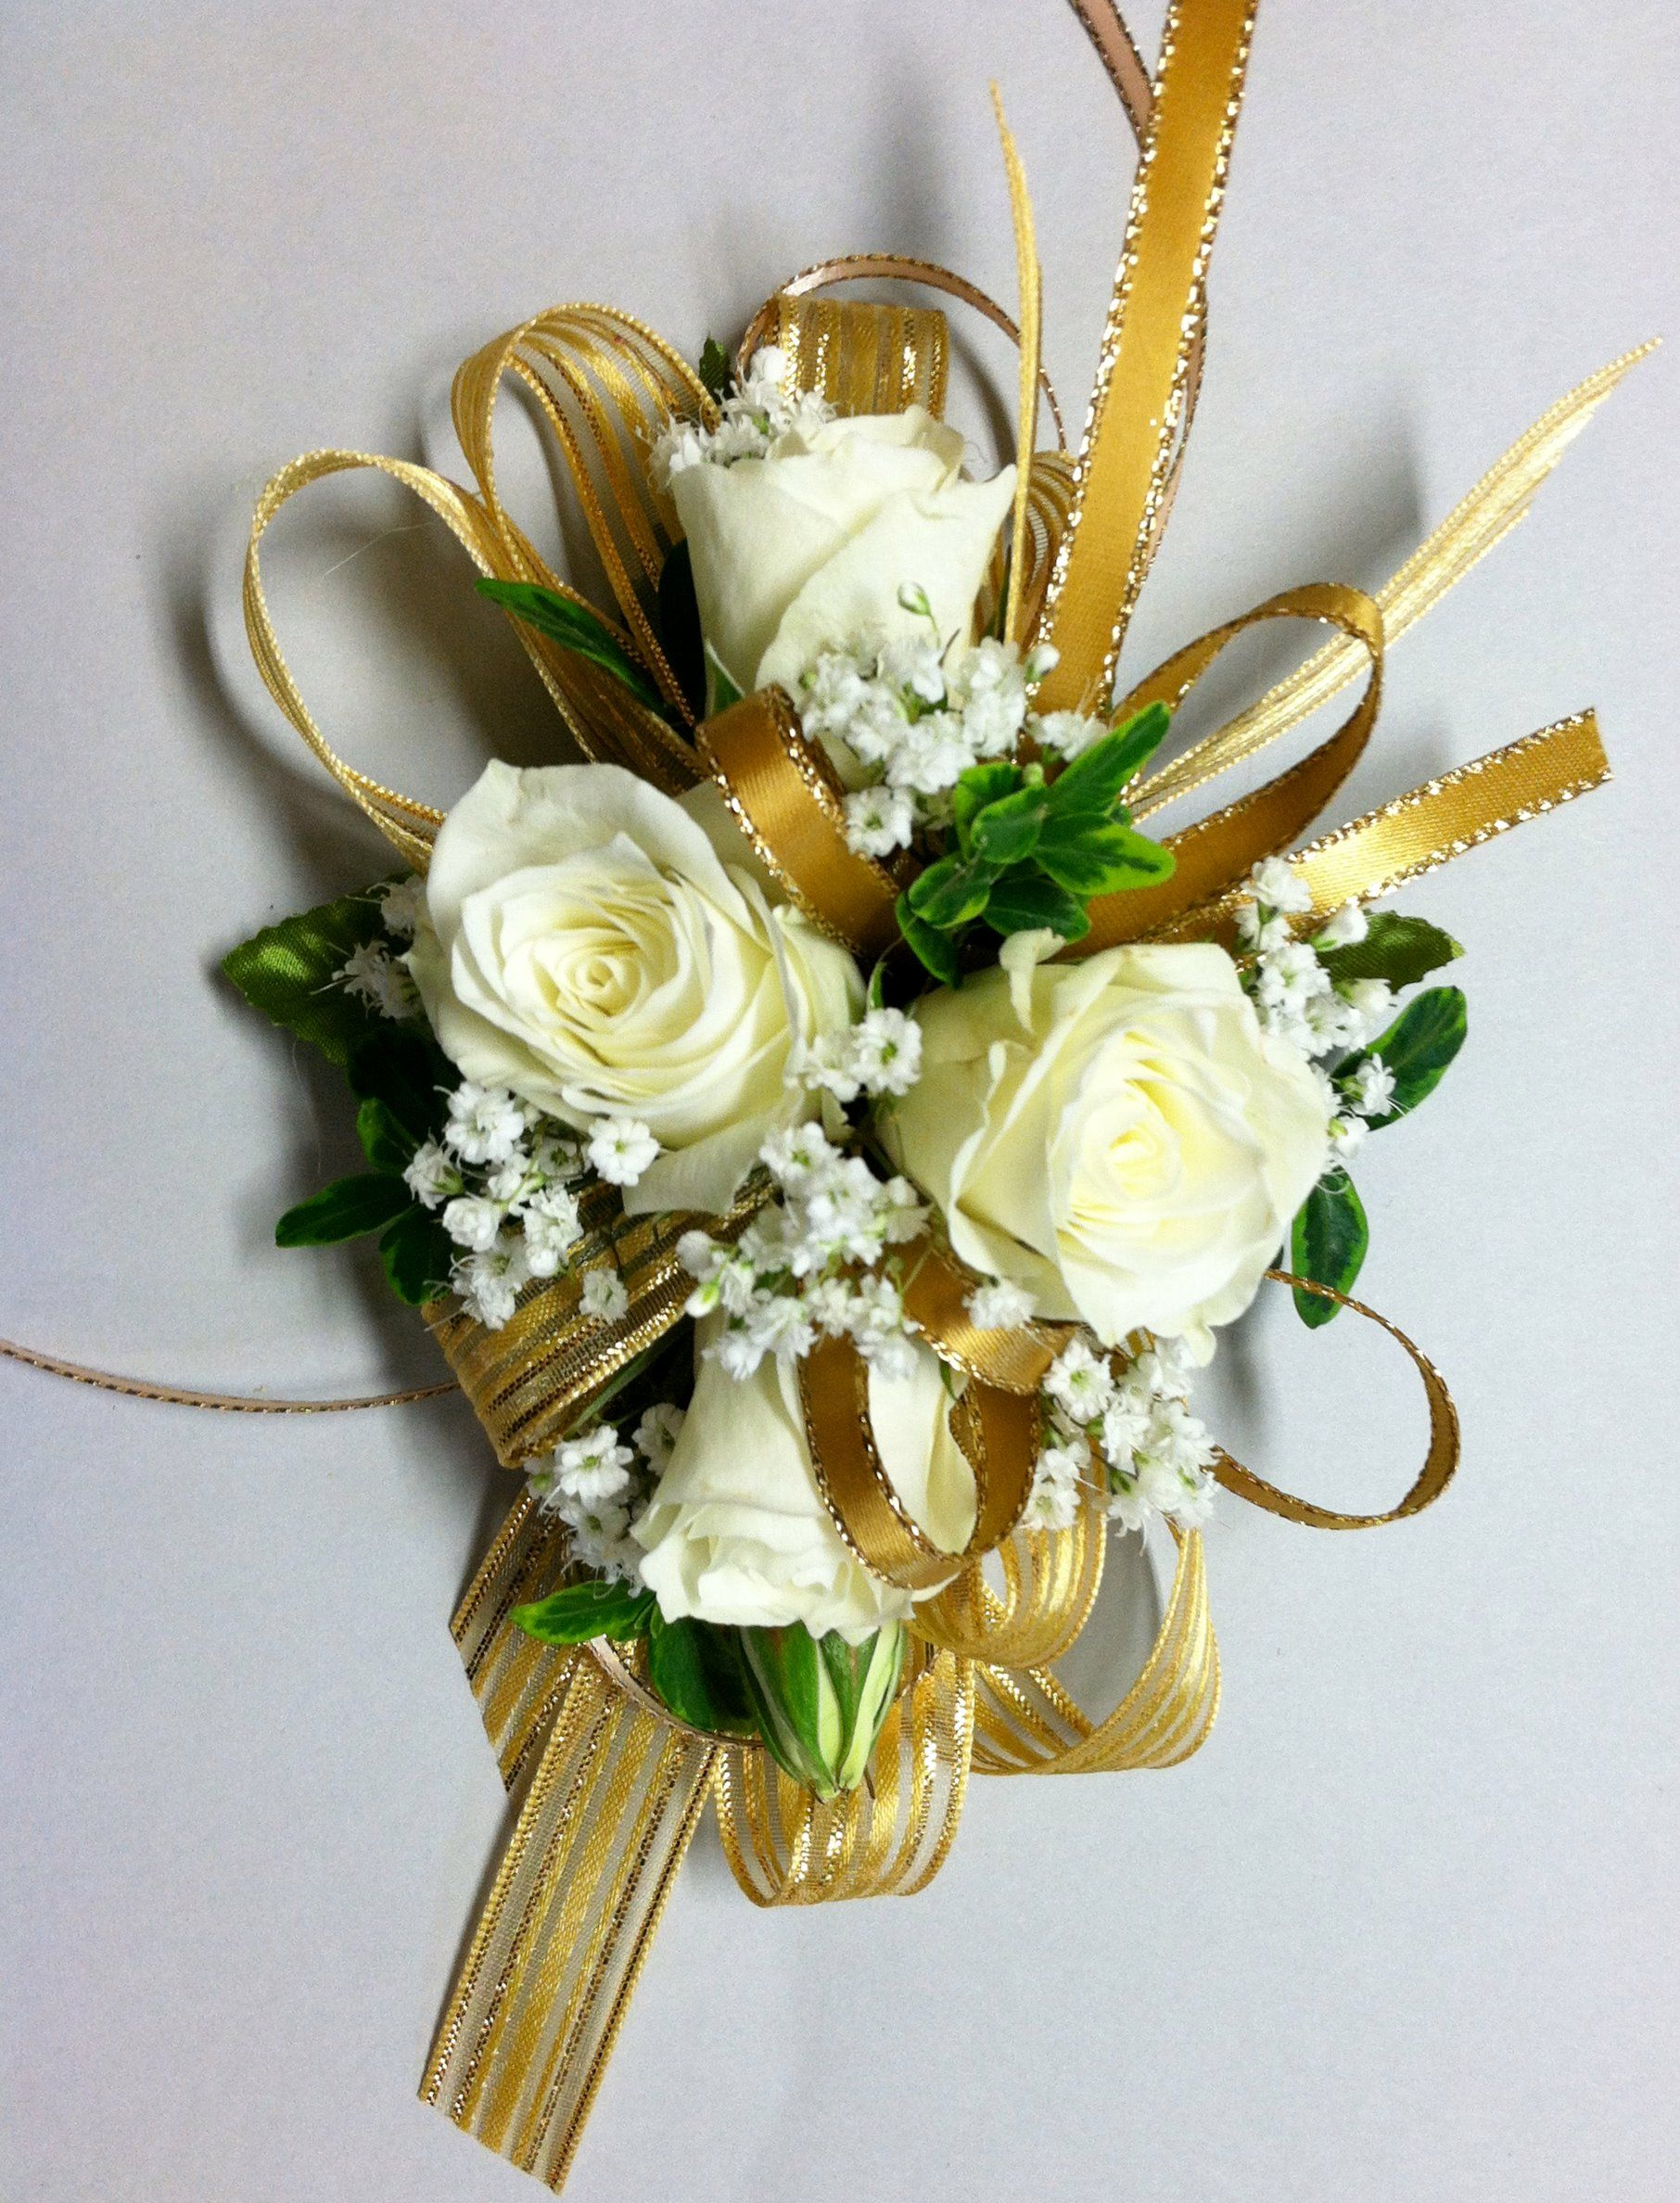 Gold Ribbons Accent A Mix Of Creamy White Spray Roses And Babies